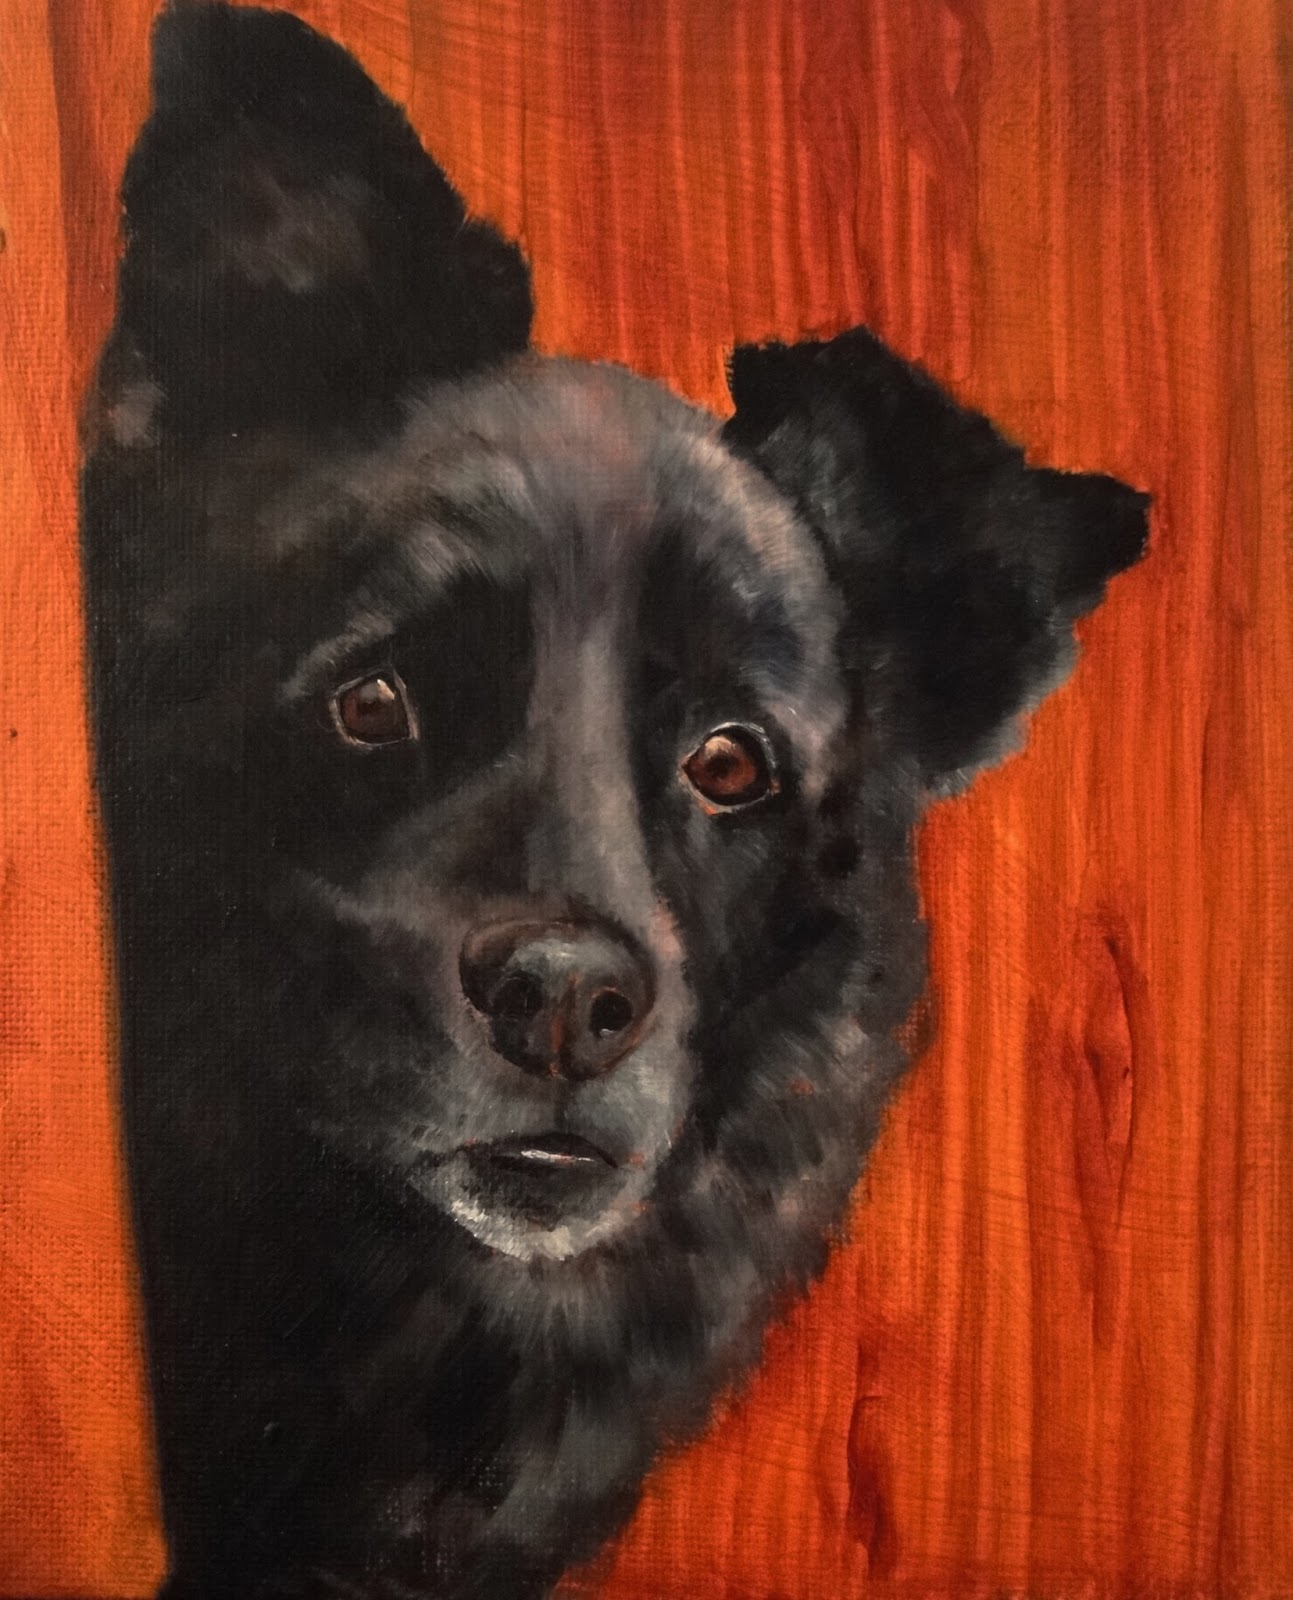 Oil painting, black dog, peeing round the corner, painting wood in oil paint, a pet portrait by Karen